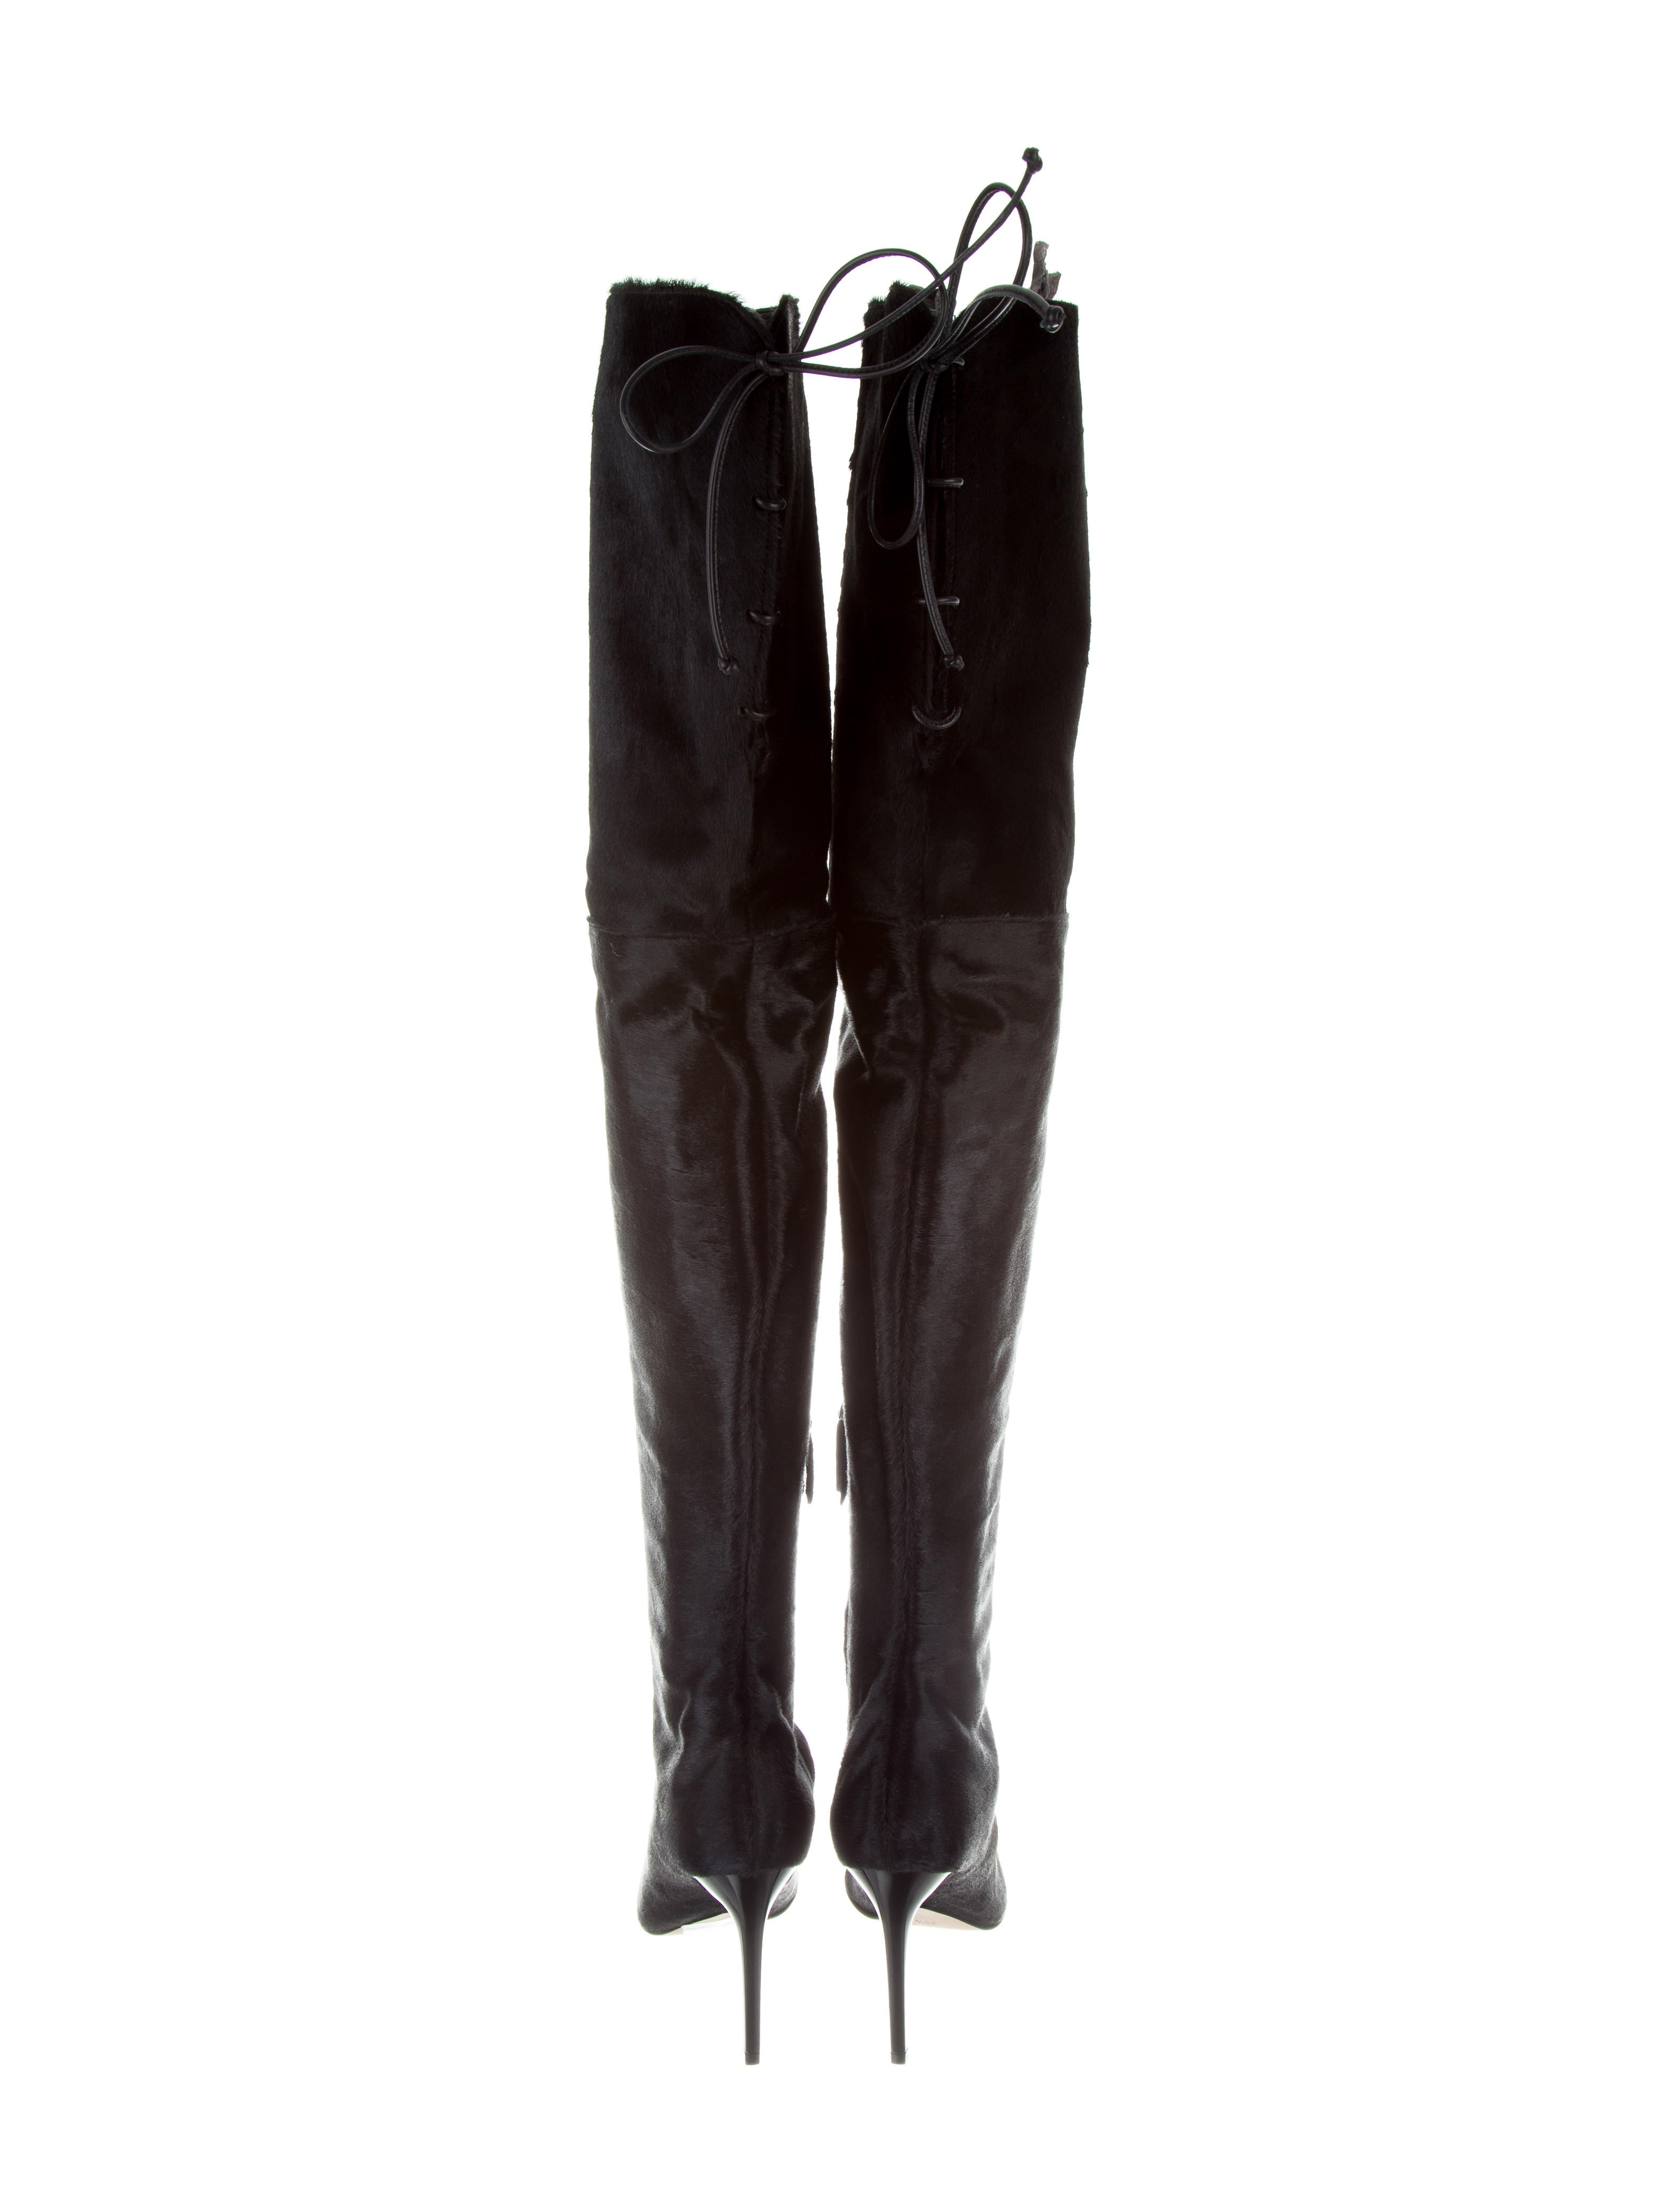 cheap sale get to buy sale limited edition Oscar de la Renta Ponyhair Over-The-Knee Boots w/ Tags footlocker cheap online ifBnSd4fI